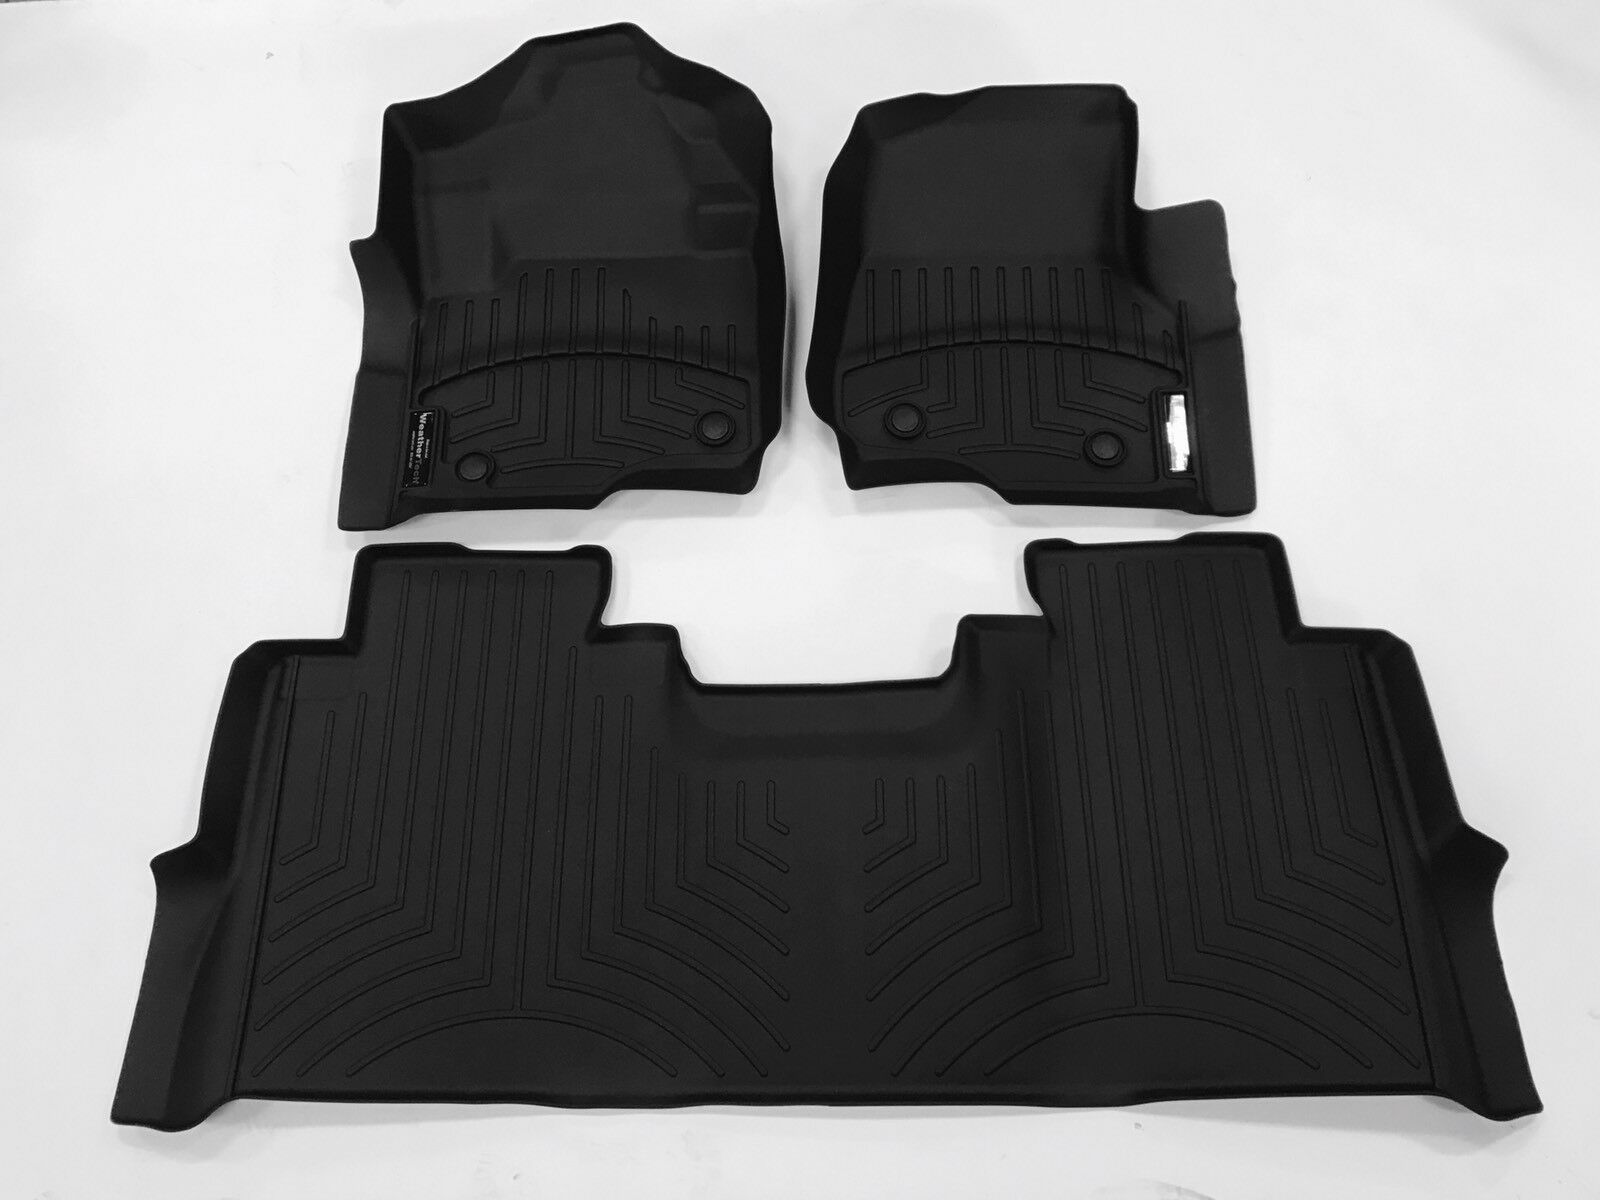 universal p mats hei wid to qlt semi vehicle rear avm piece tan front floor price weathertech best trim all fit set spin prod